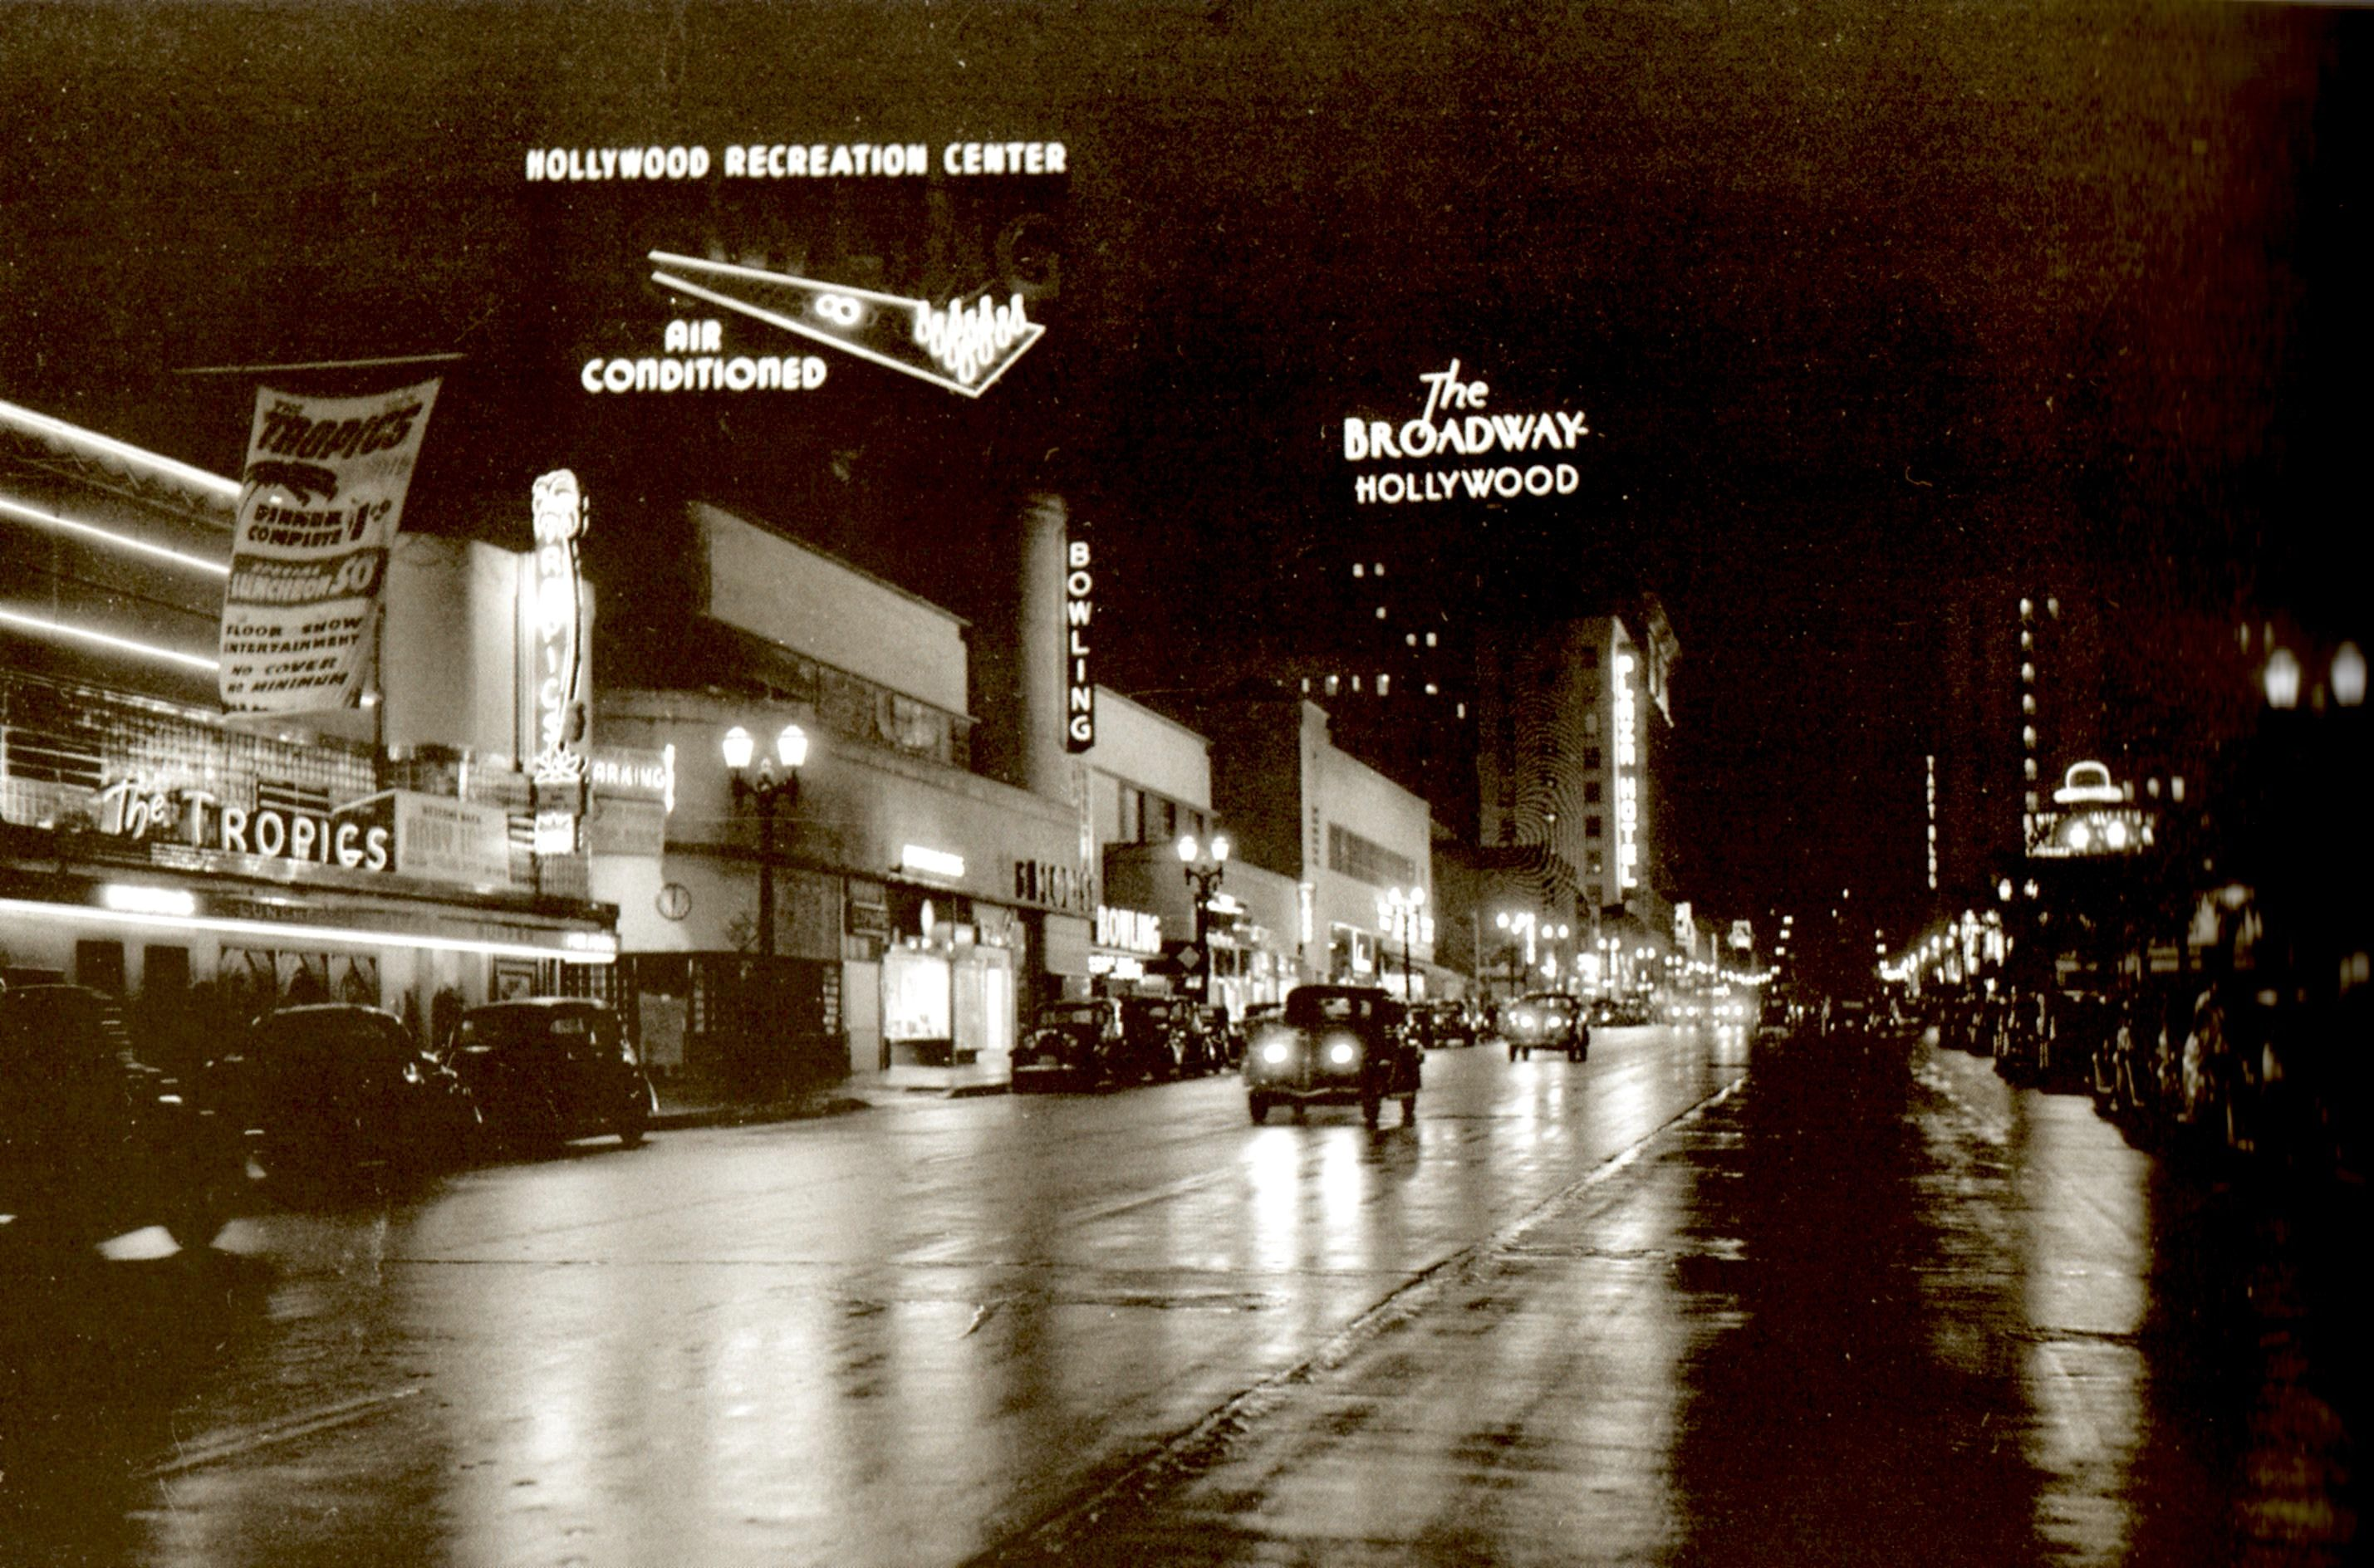 Vine Street Looking 1939 We Can See The Tropics Bar The Hollywood Recreation Center Bowling Alley Th Hollywood Restaurants Brown Derby Restaurant Hollywood